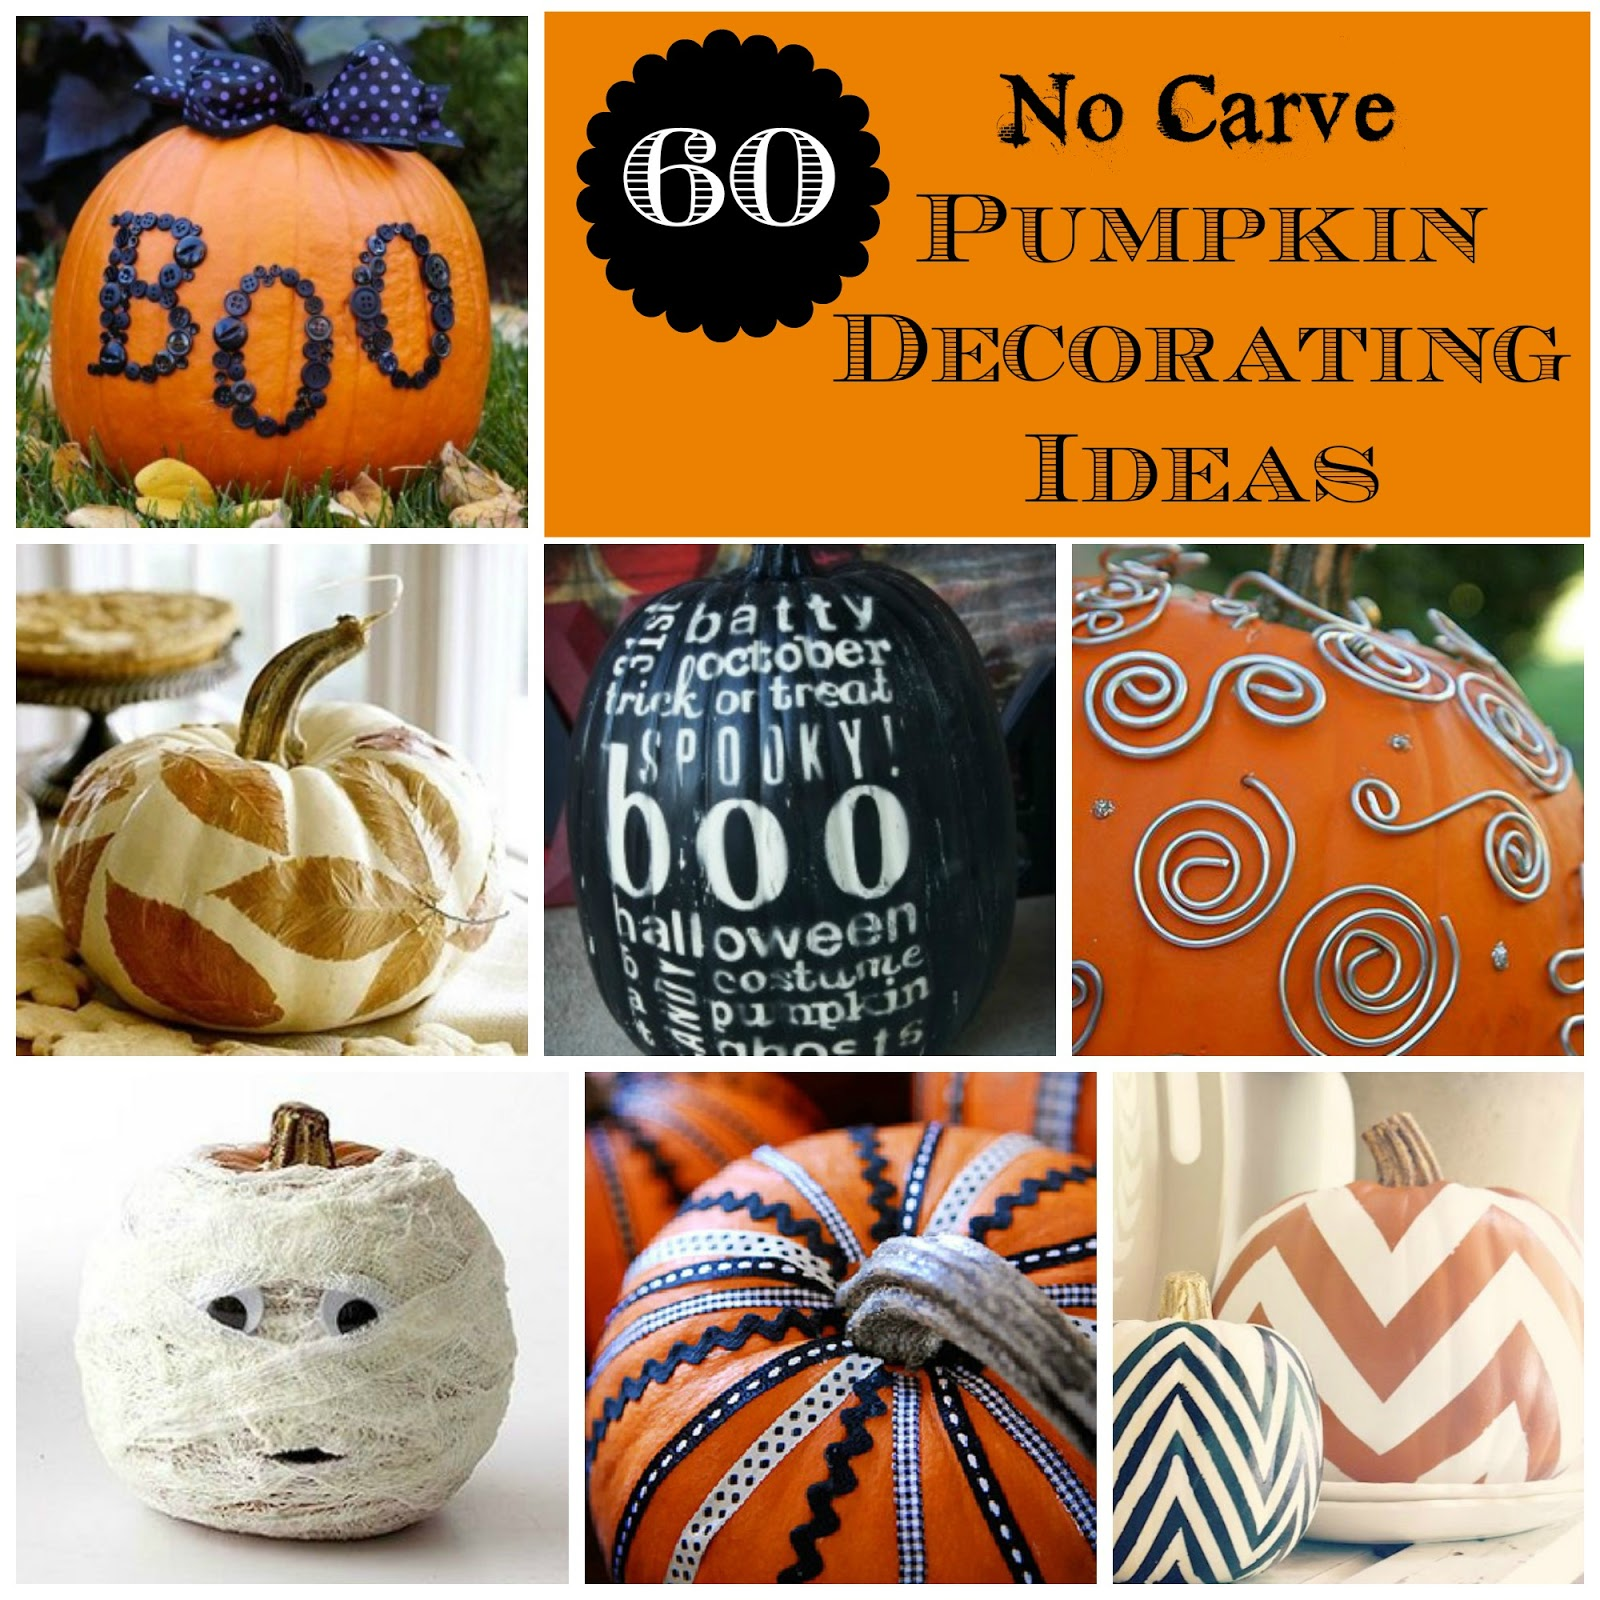 60 no carve pumpkin decorating ideas ~ all mississippi baseball